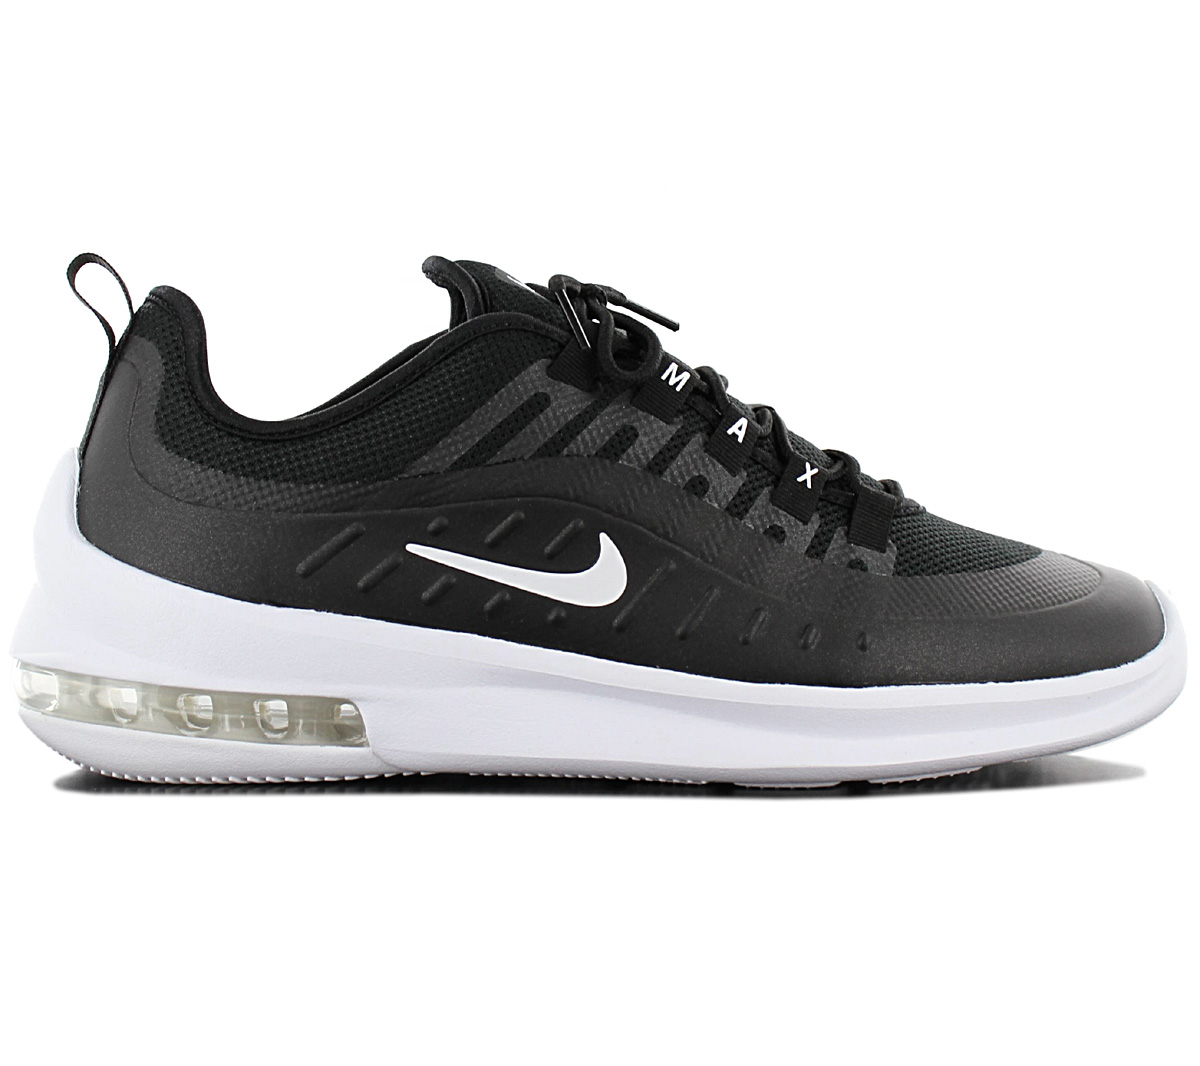 Details about Nike air max Axis Men's Sneaker AA2146 003 Black Shoes Sneakers Trainers